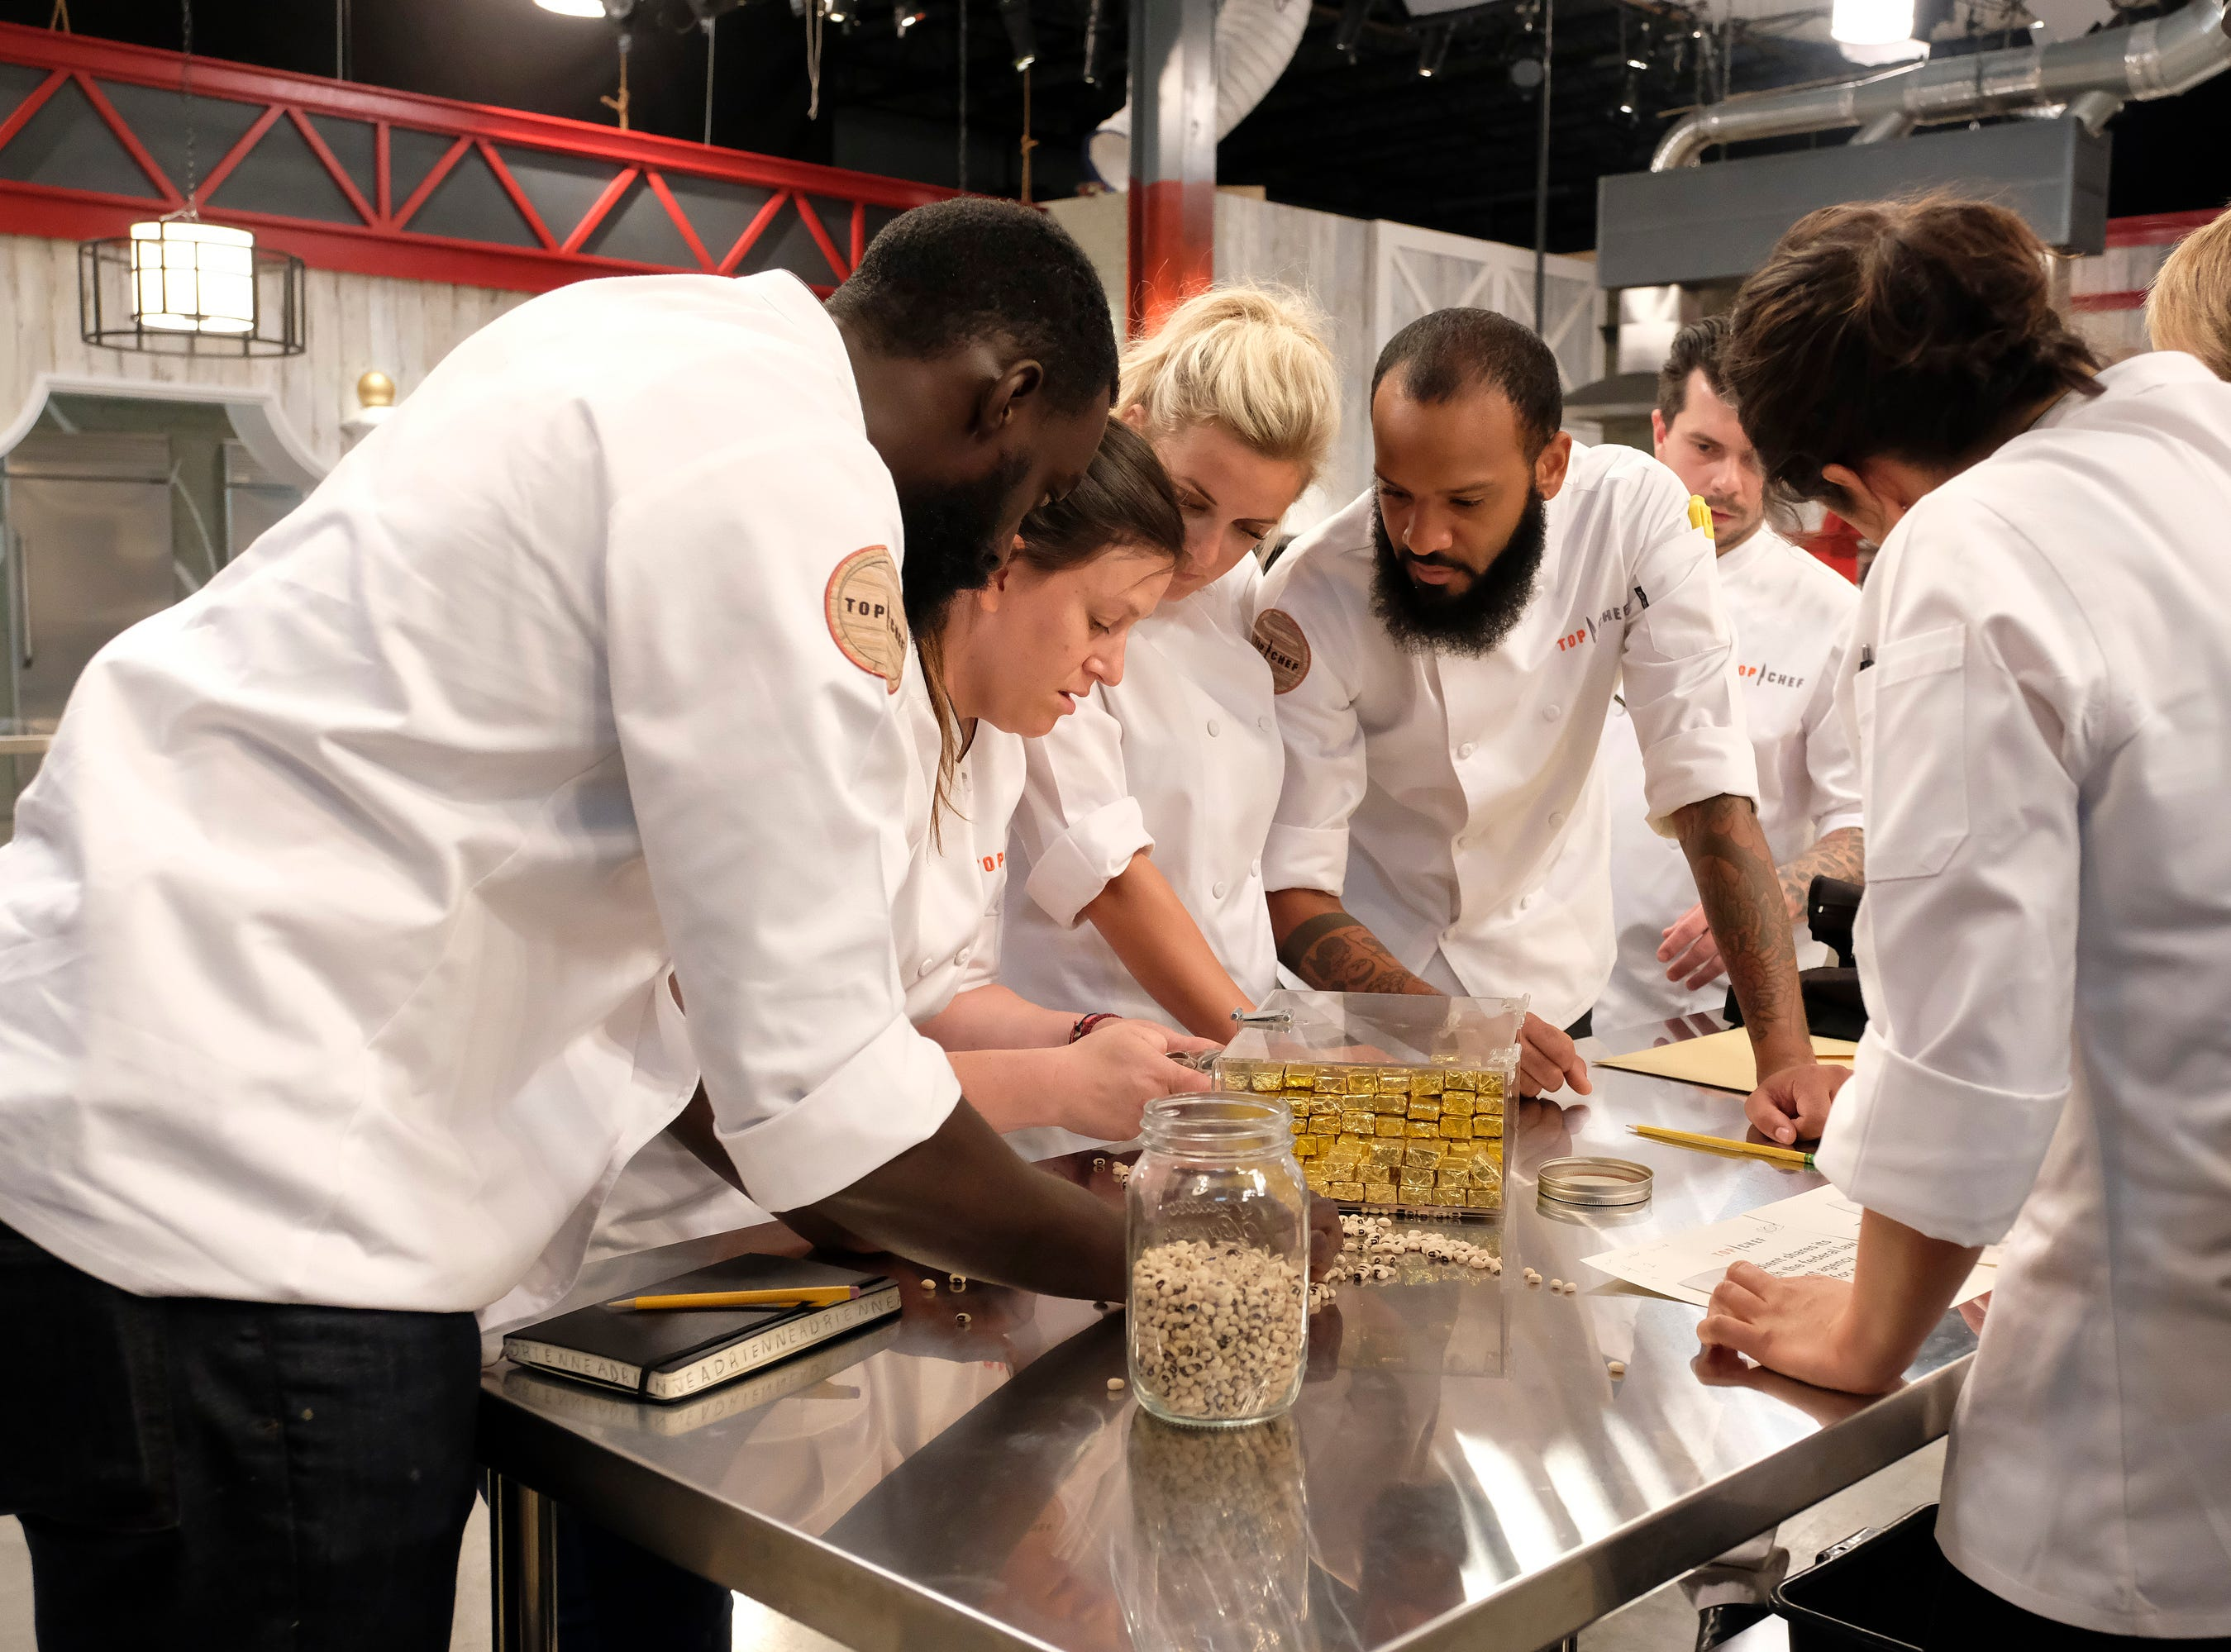 (From left to right): Contestants Eric Adjepong, Sara Bradley, Adrienne Wright, Justin Sutherland and Eddie Konrad on episode 10 of Bravo's 'Top Chef: Kentucky' season.